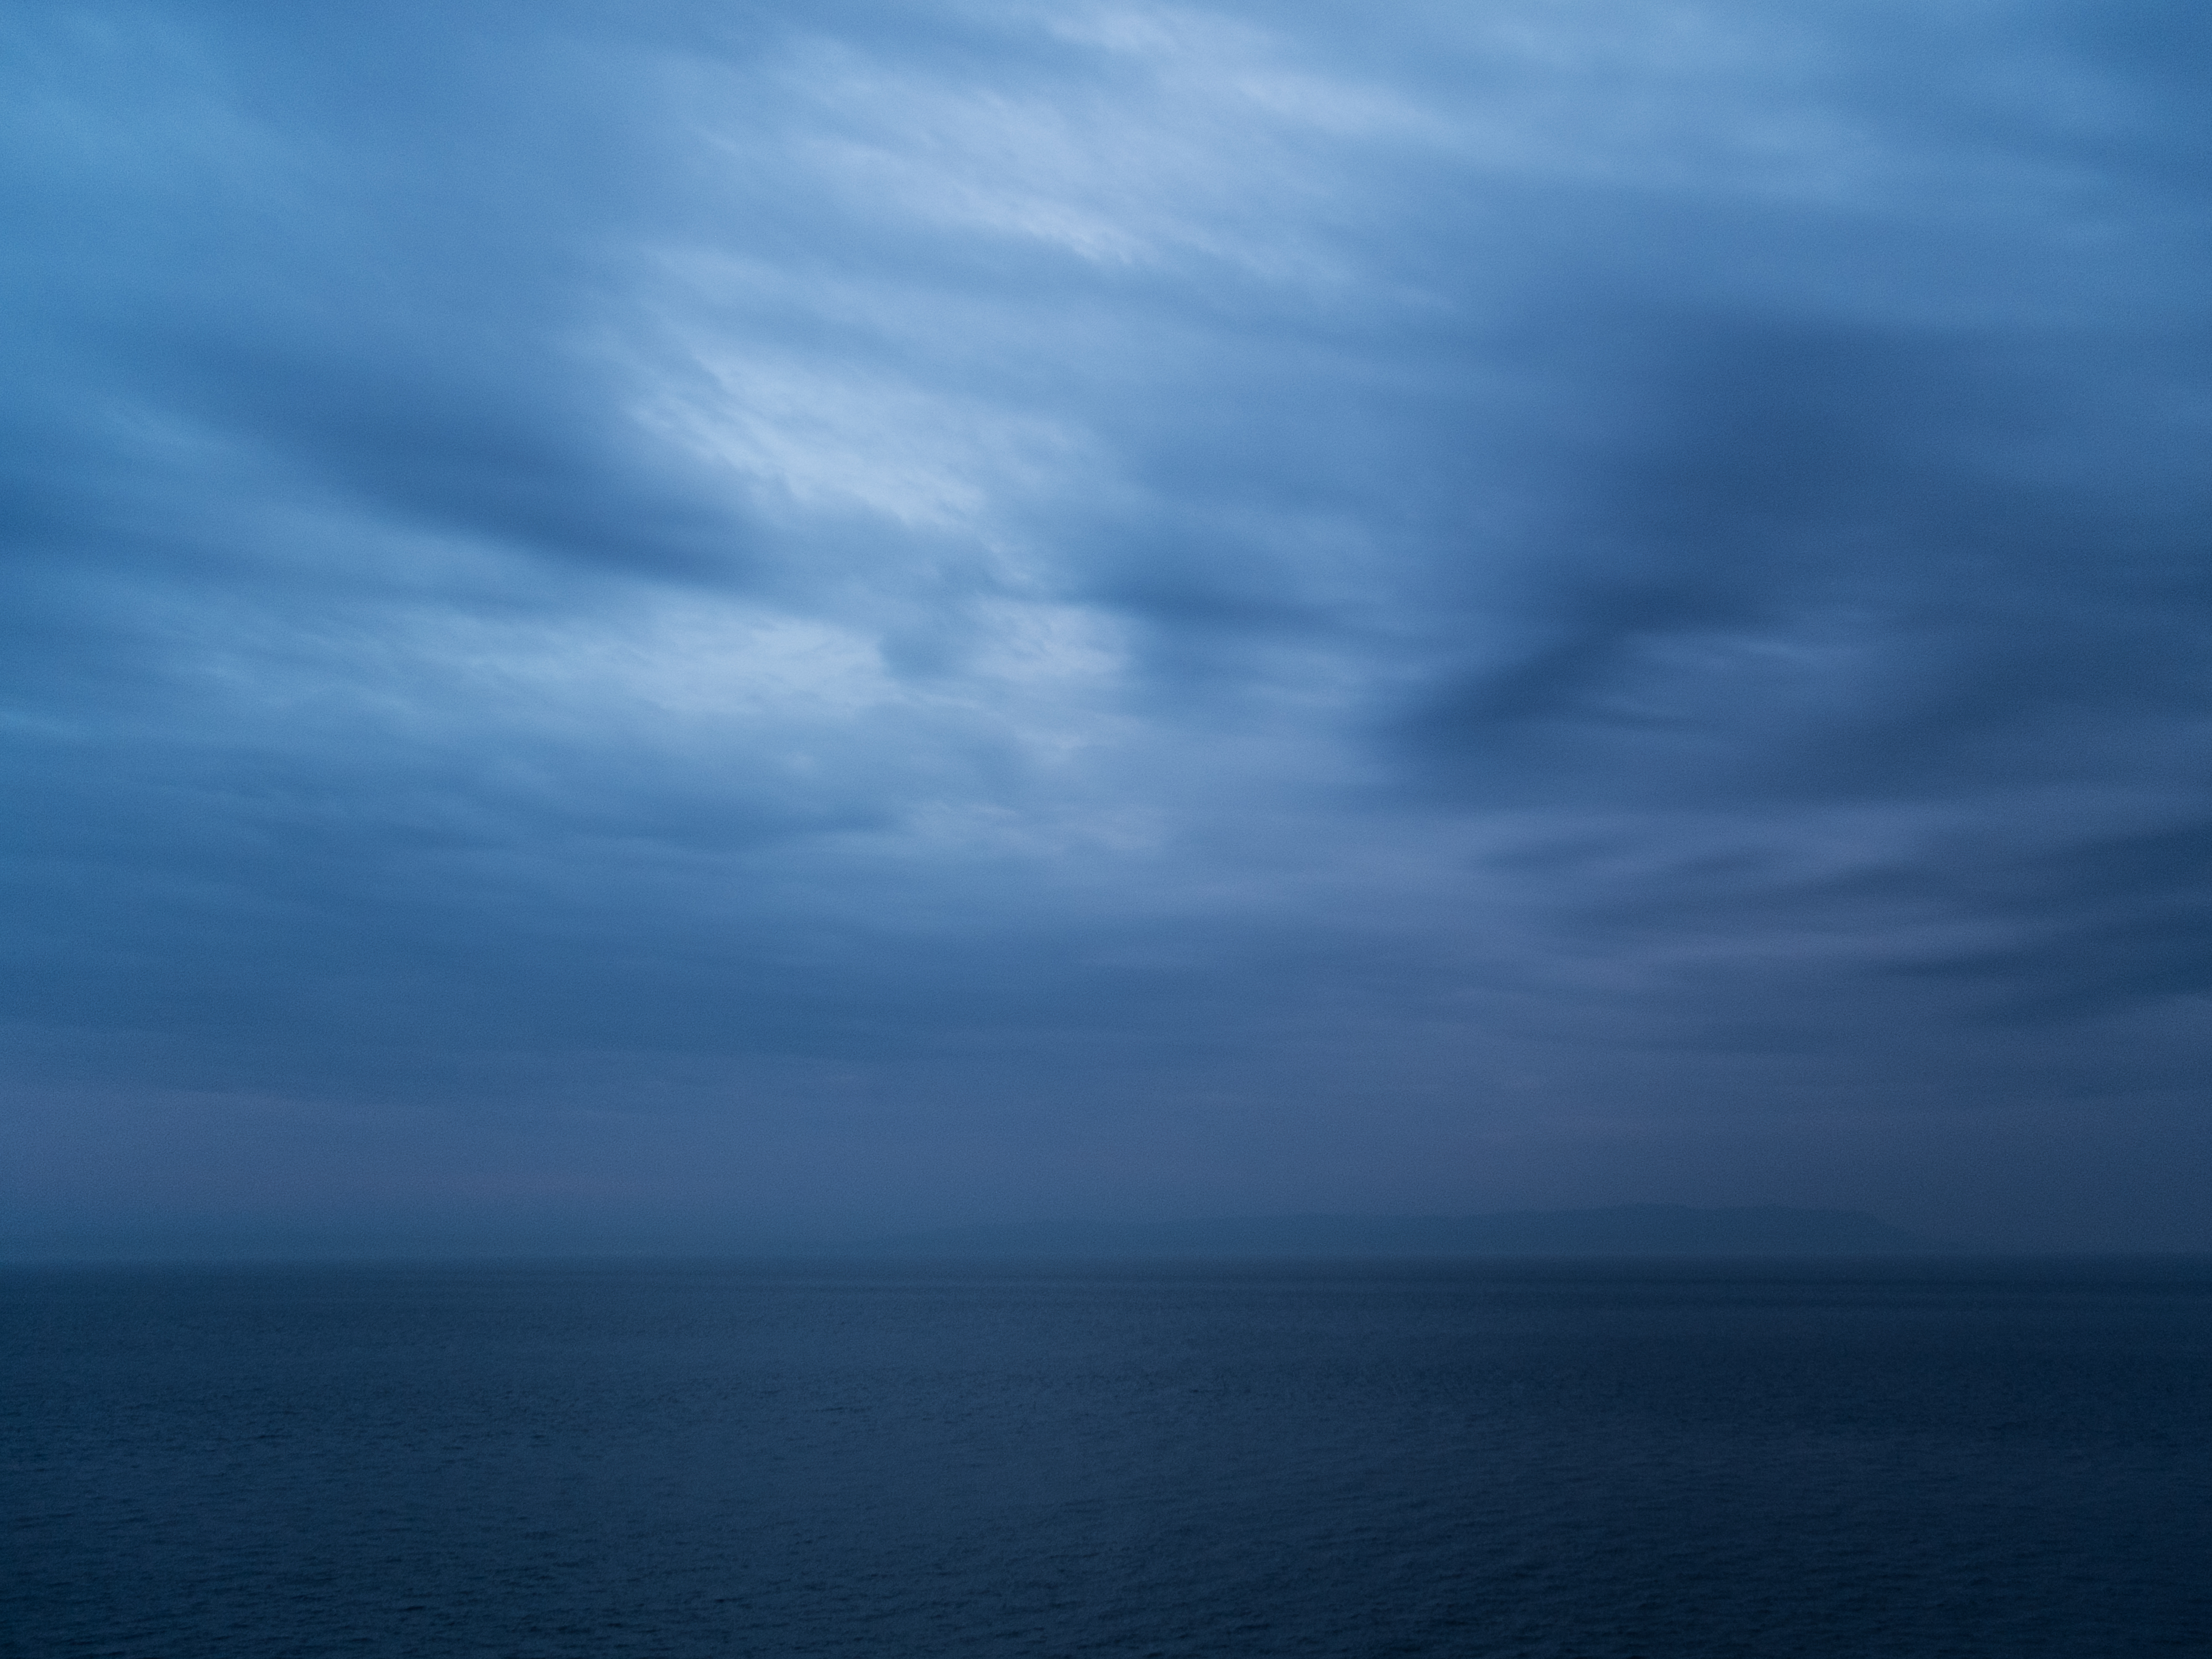 Blue skies and blue waters in the Strait of Gibraltar at twilight.